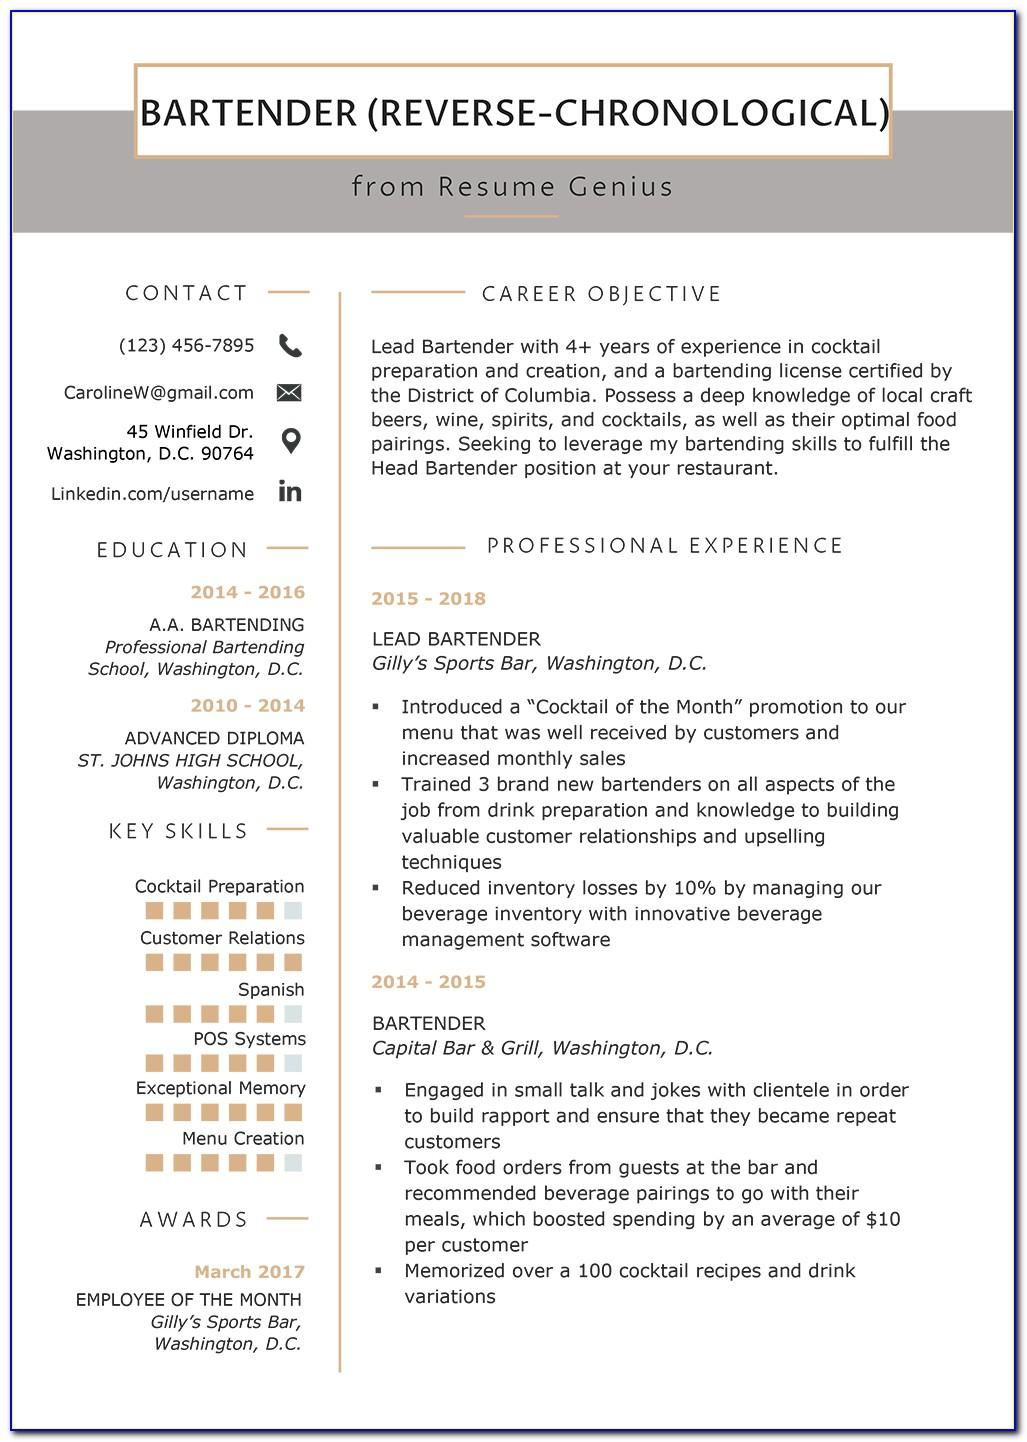 Sample Chronological Resume Template Word